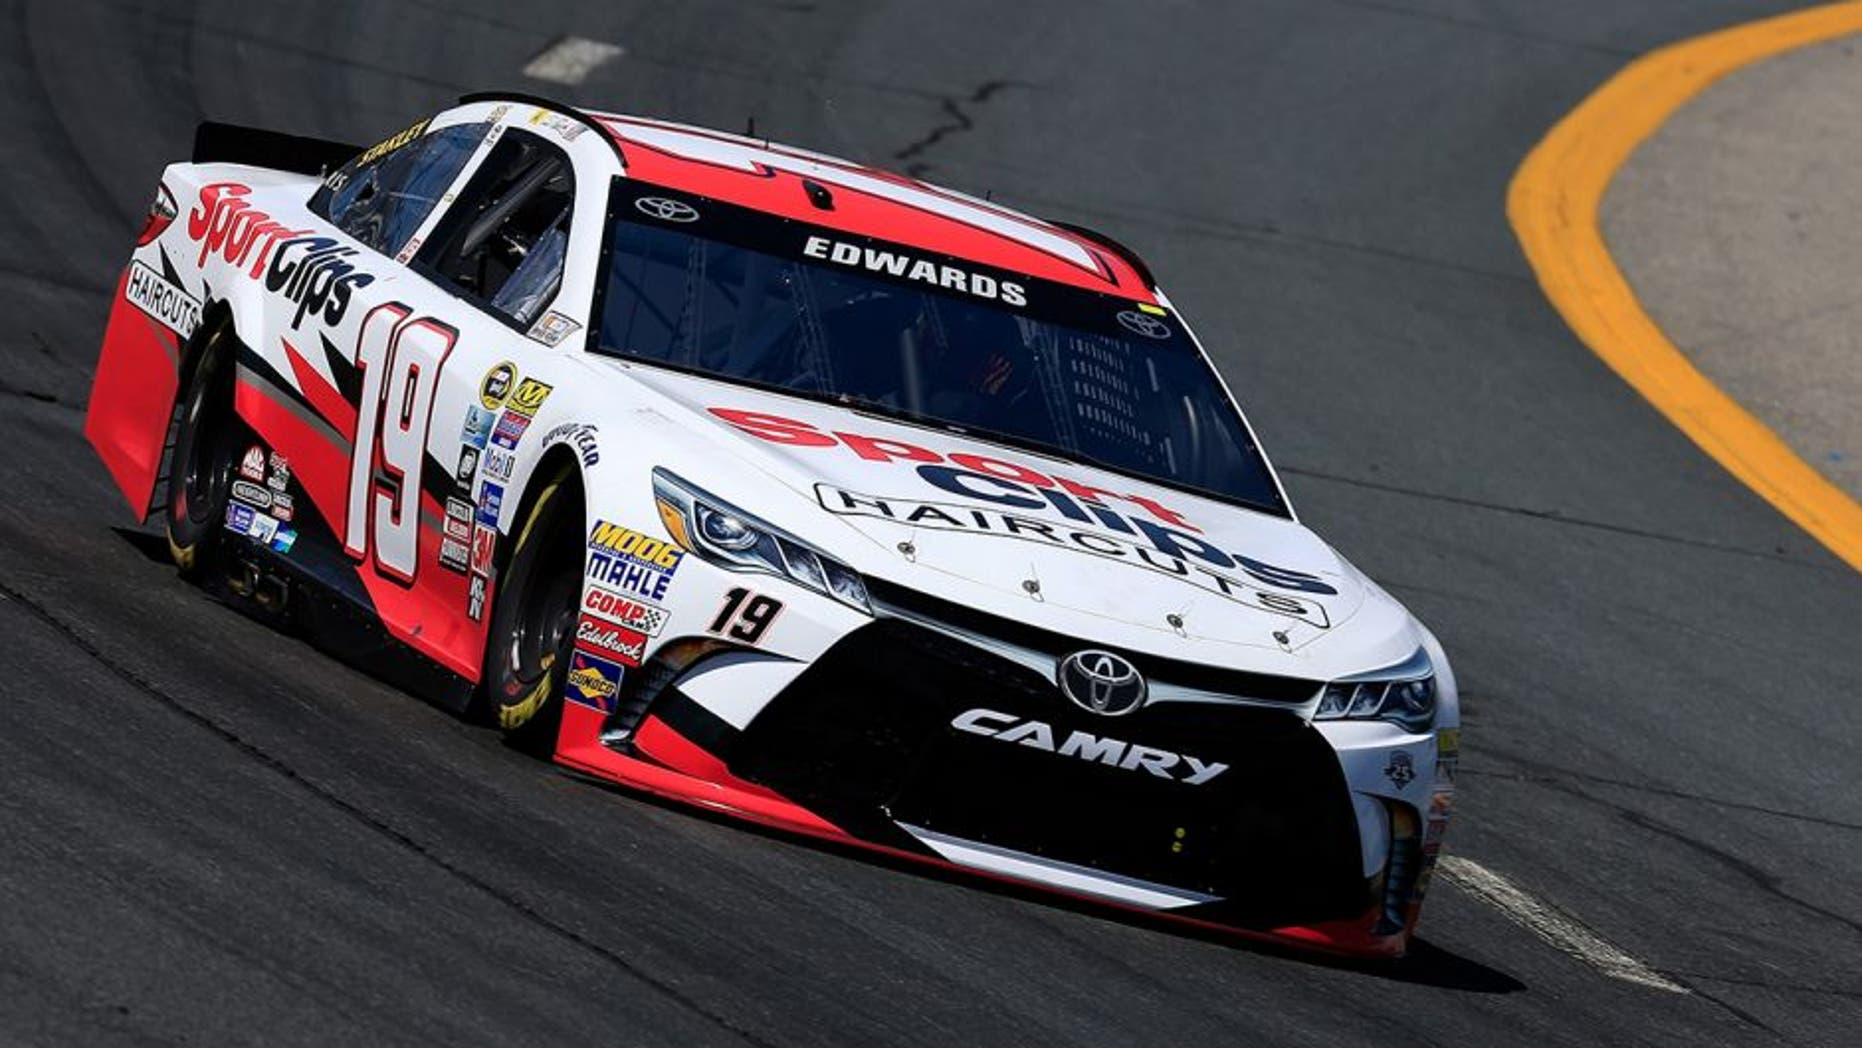 LOUDON, NH - JULY 15: Carl Edwards, driver of the #19 Sport Clips Toyota, practices for the NASCAR Sprint Cup Series New Hampshire 301 at New Hampshire Motor Speedway on July 16, 2016 in Loudon, New Hampshire. (Photo by Chris Trotman/Getty Images)